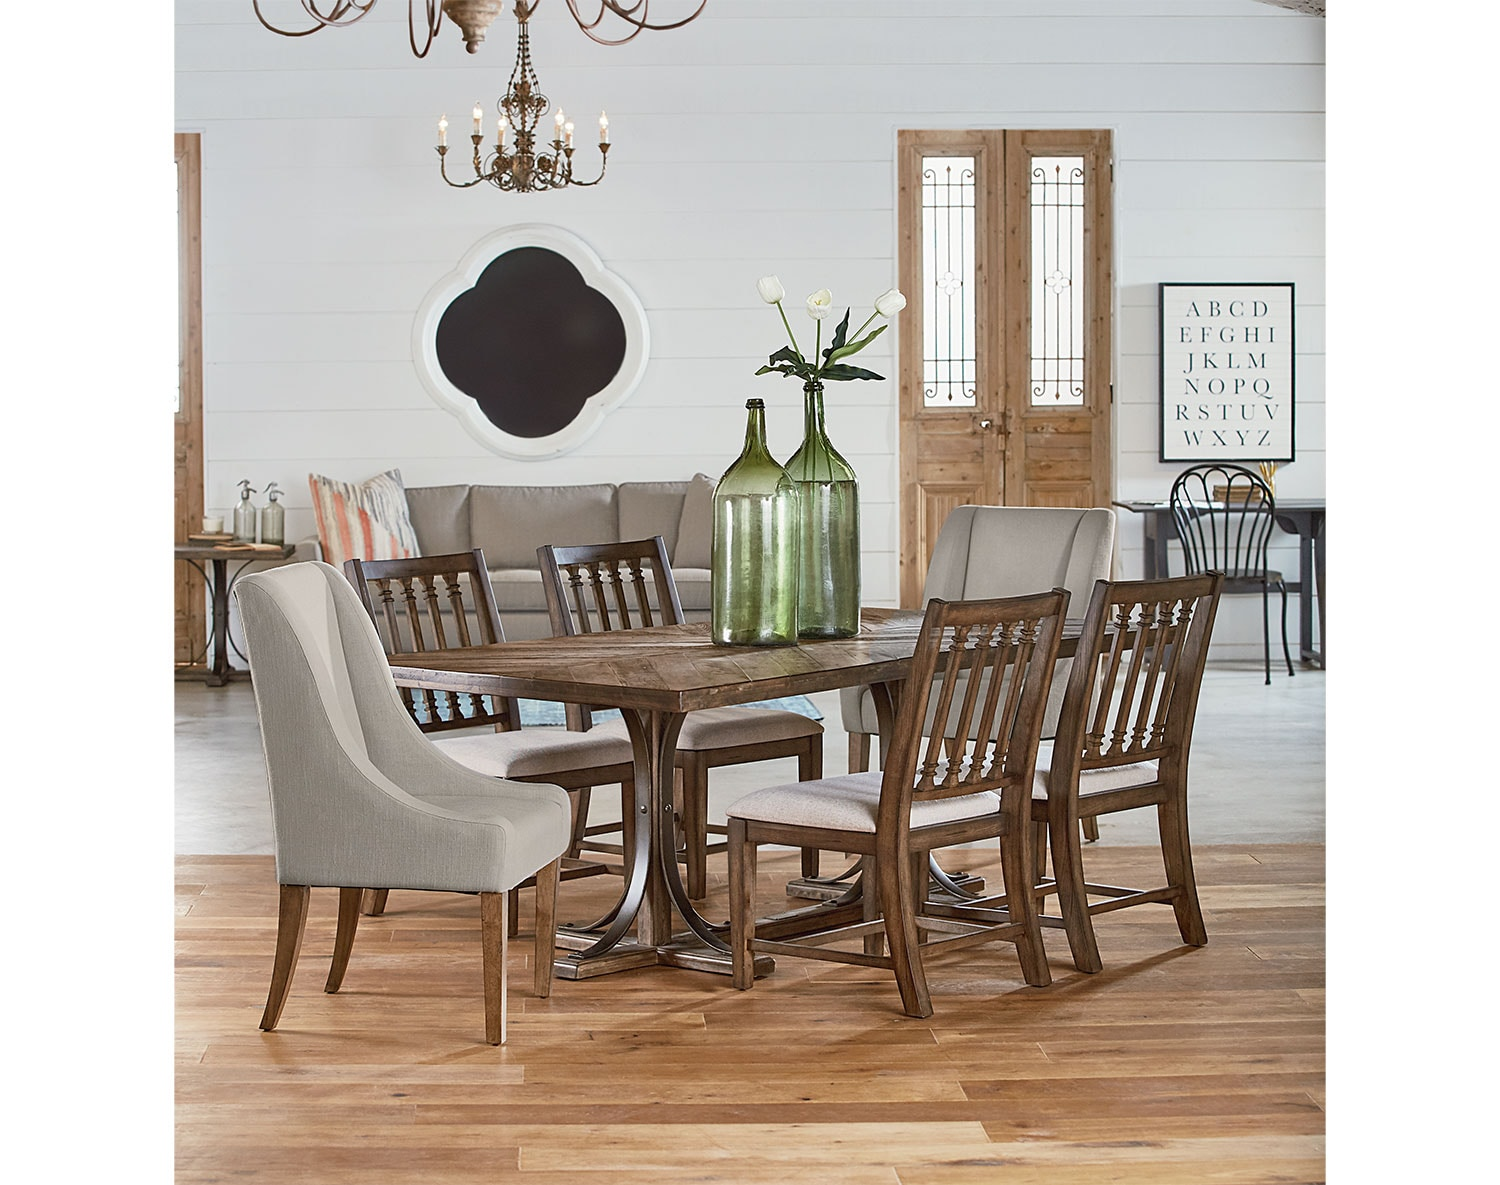 dining room furniture from magnolia home value city furniture. Black Bedroom Furniture Sets. Home Design Ideas